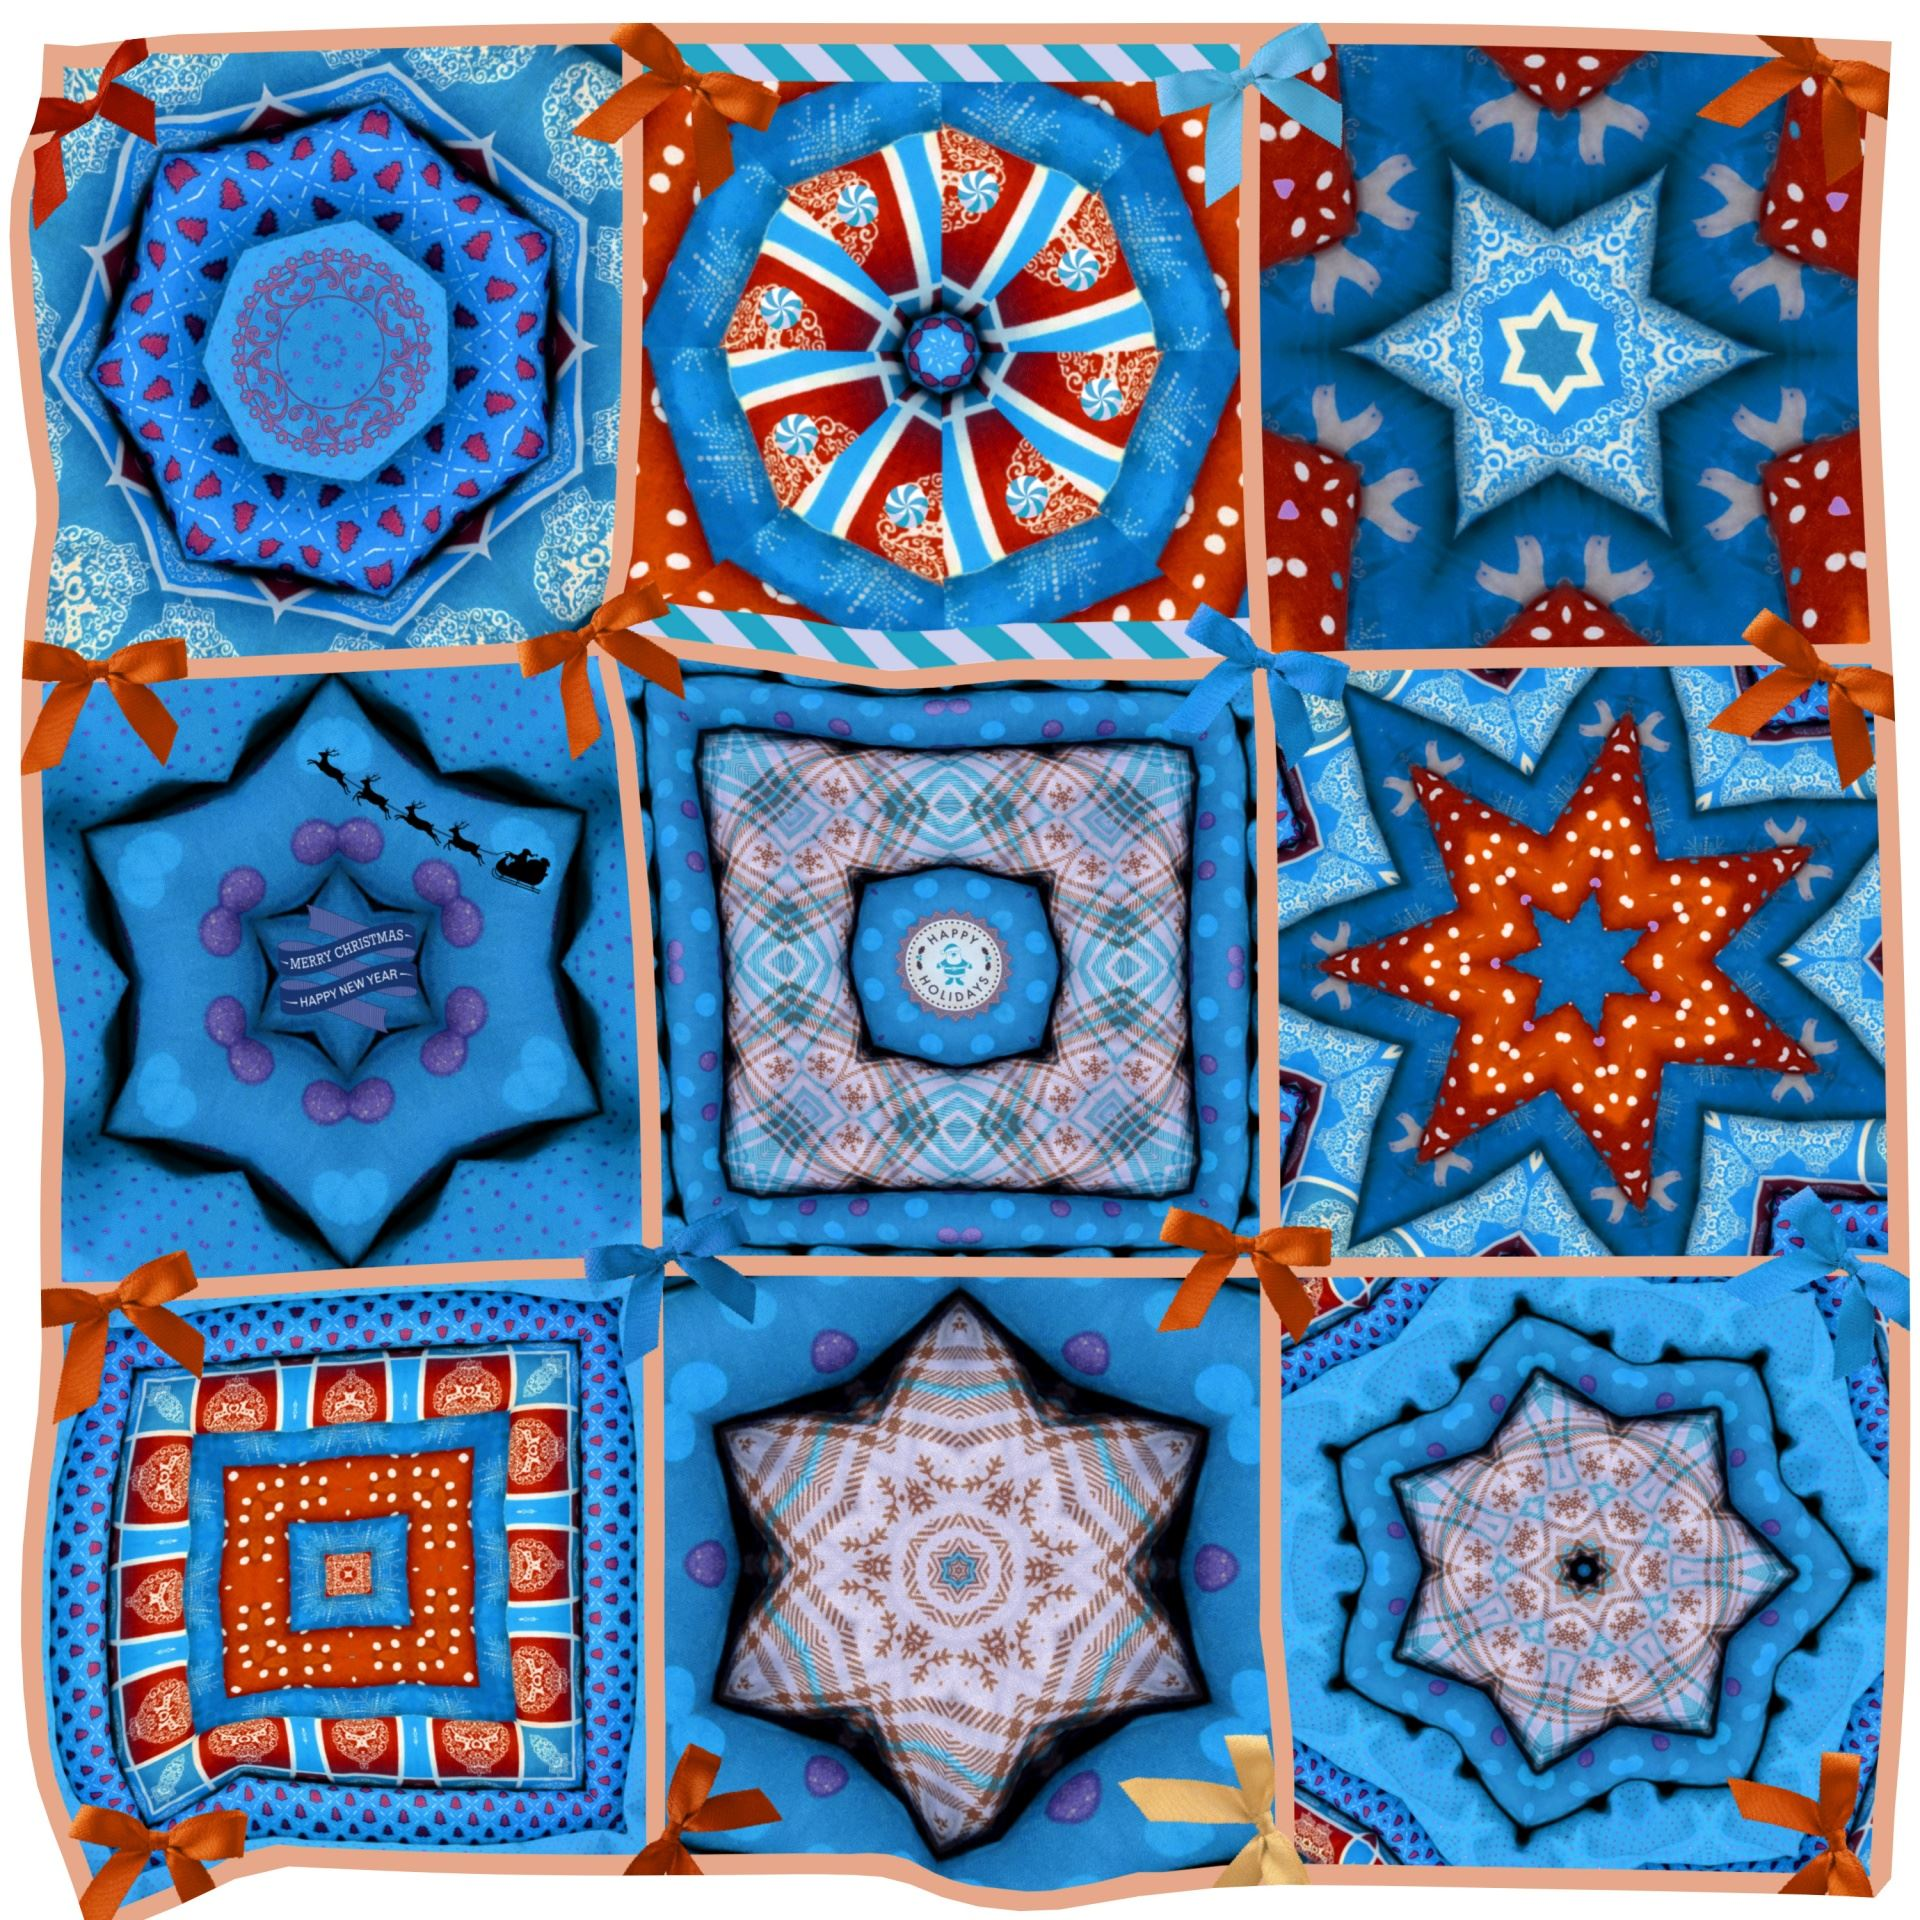 quilt-collage-blue